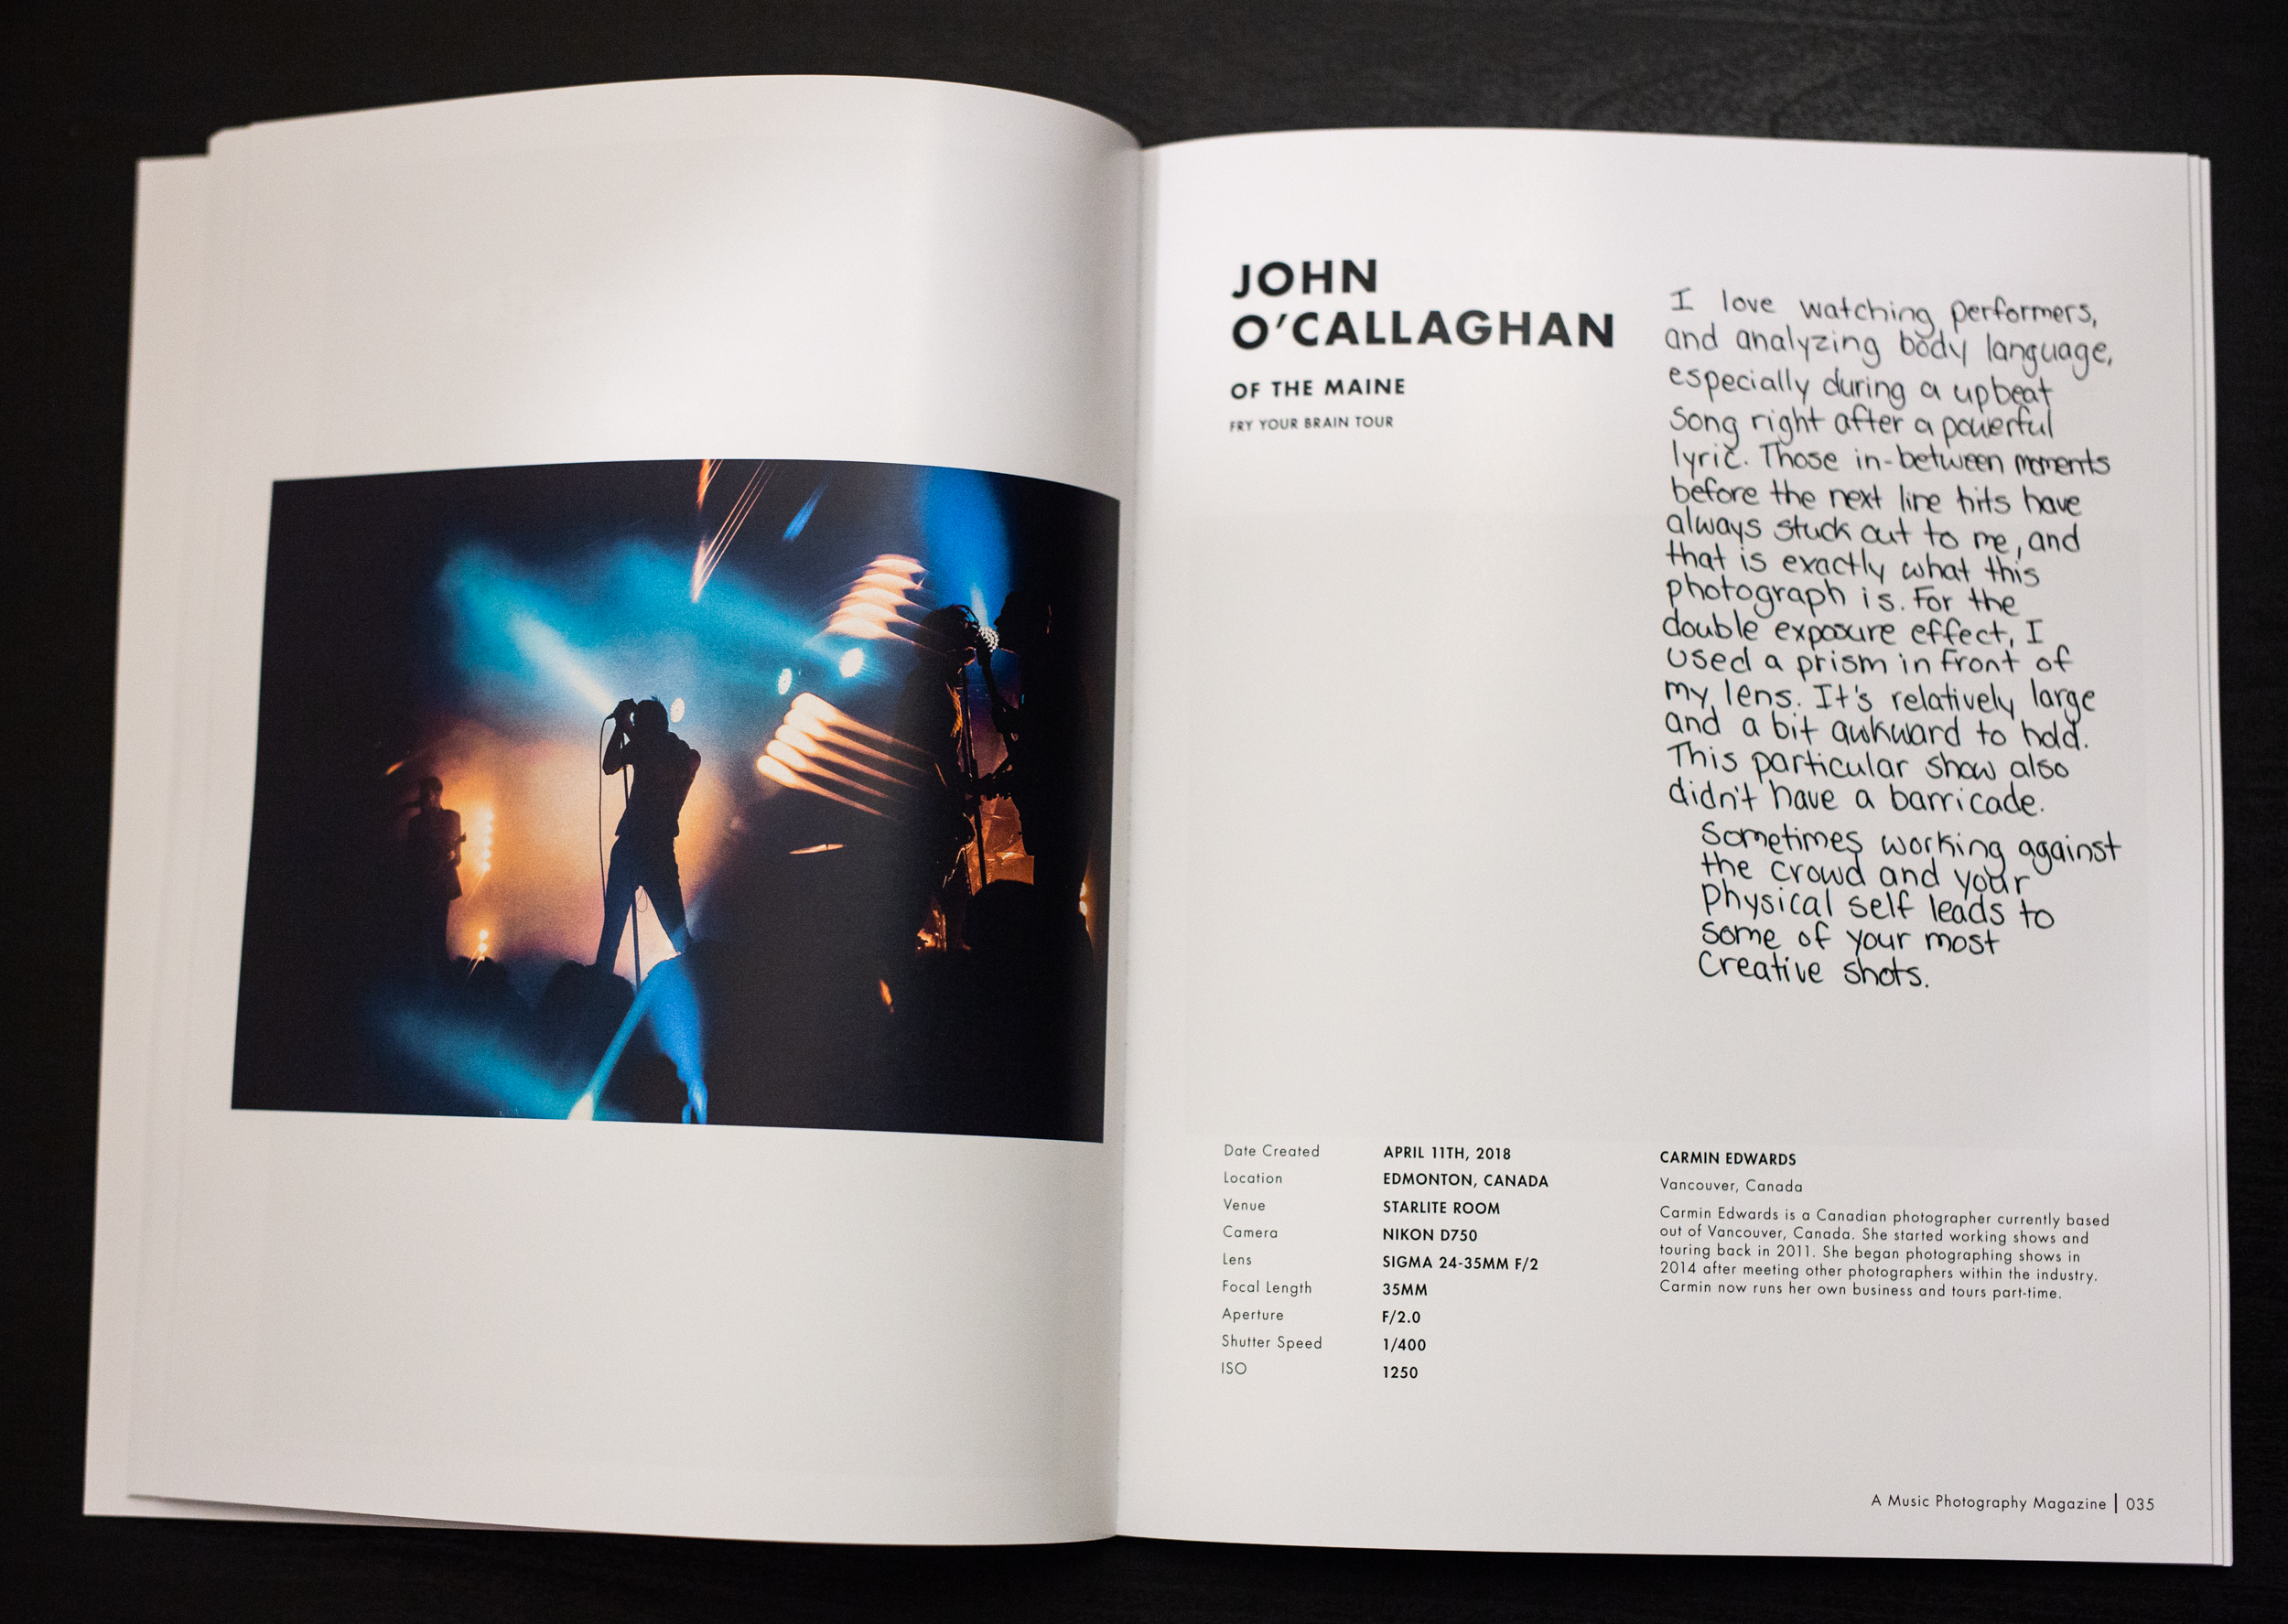 A Music Photography Magazine